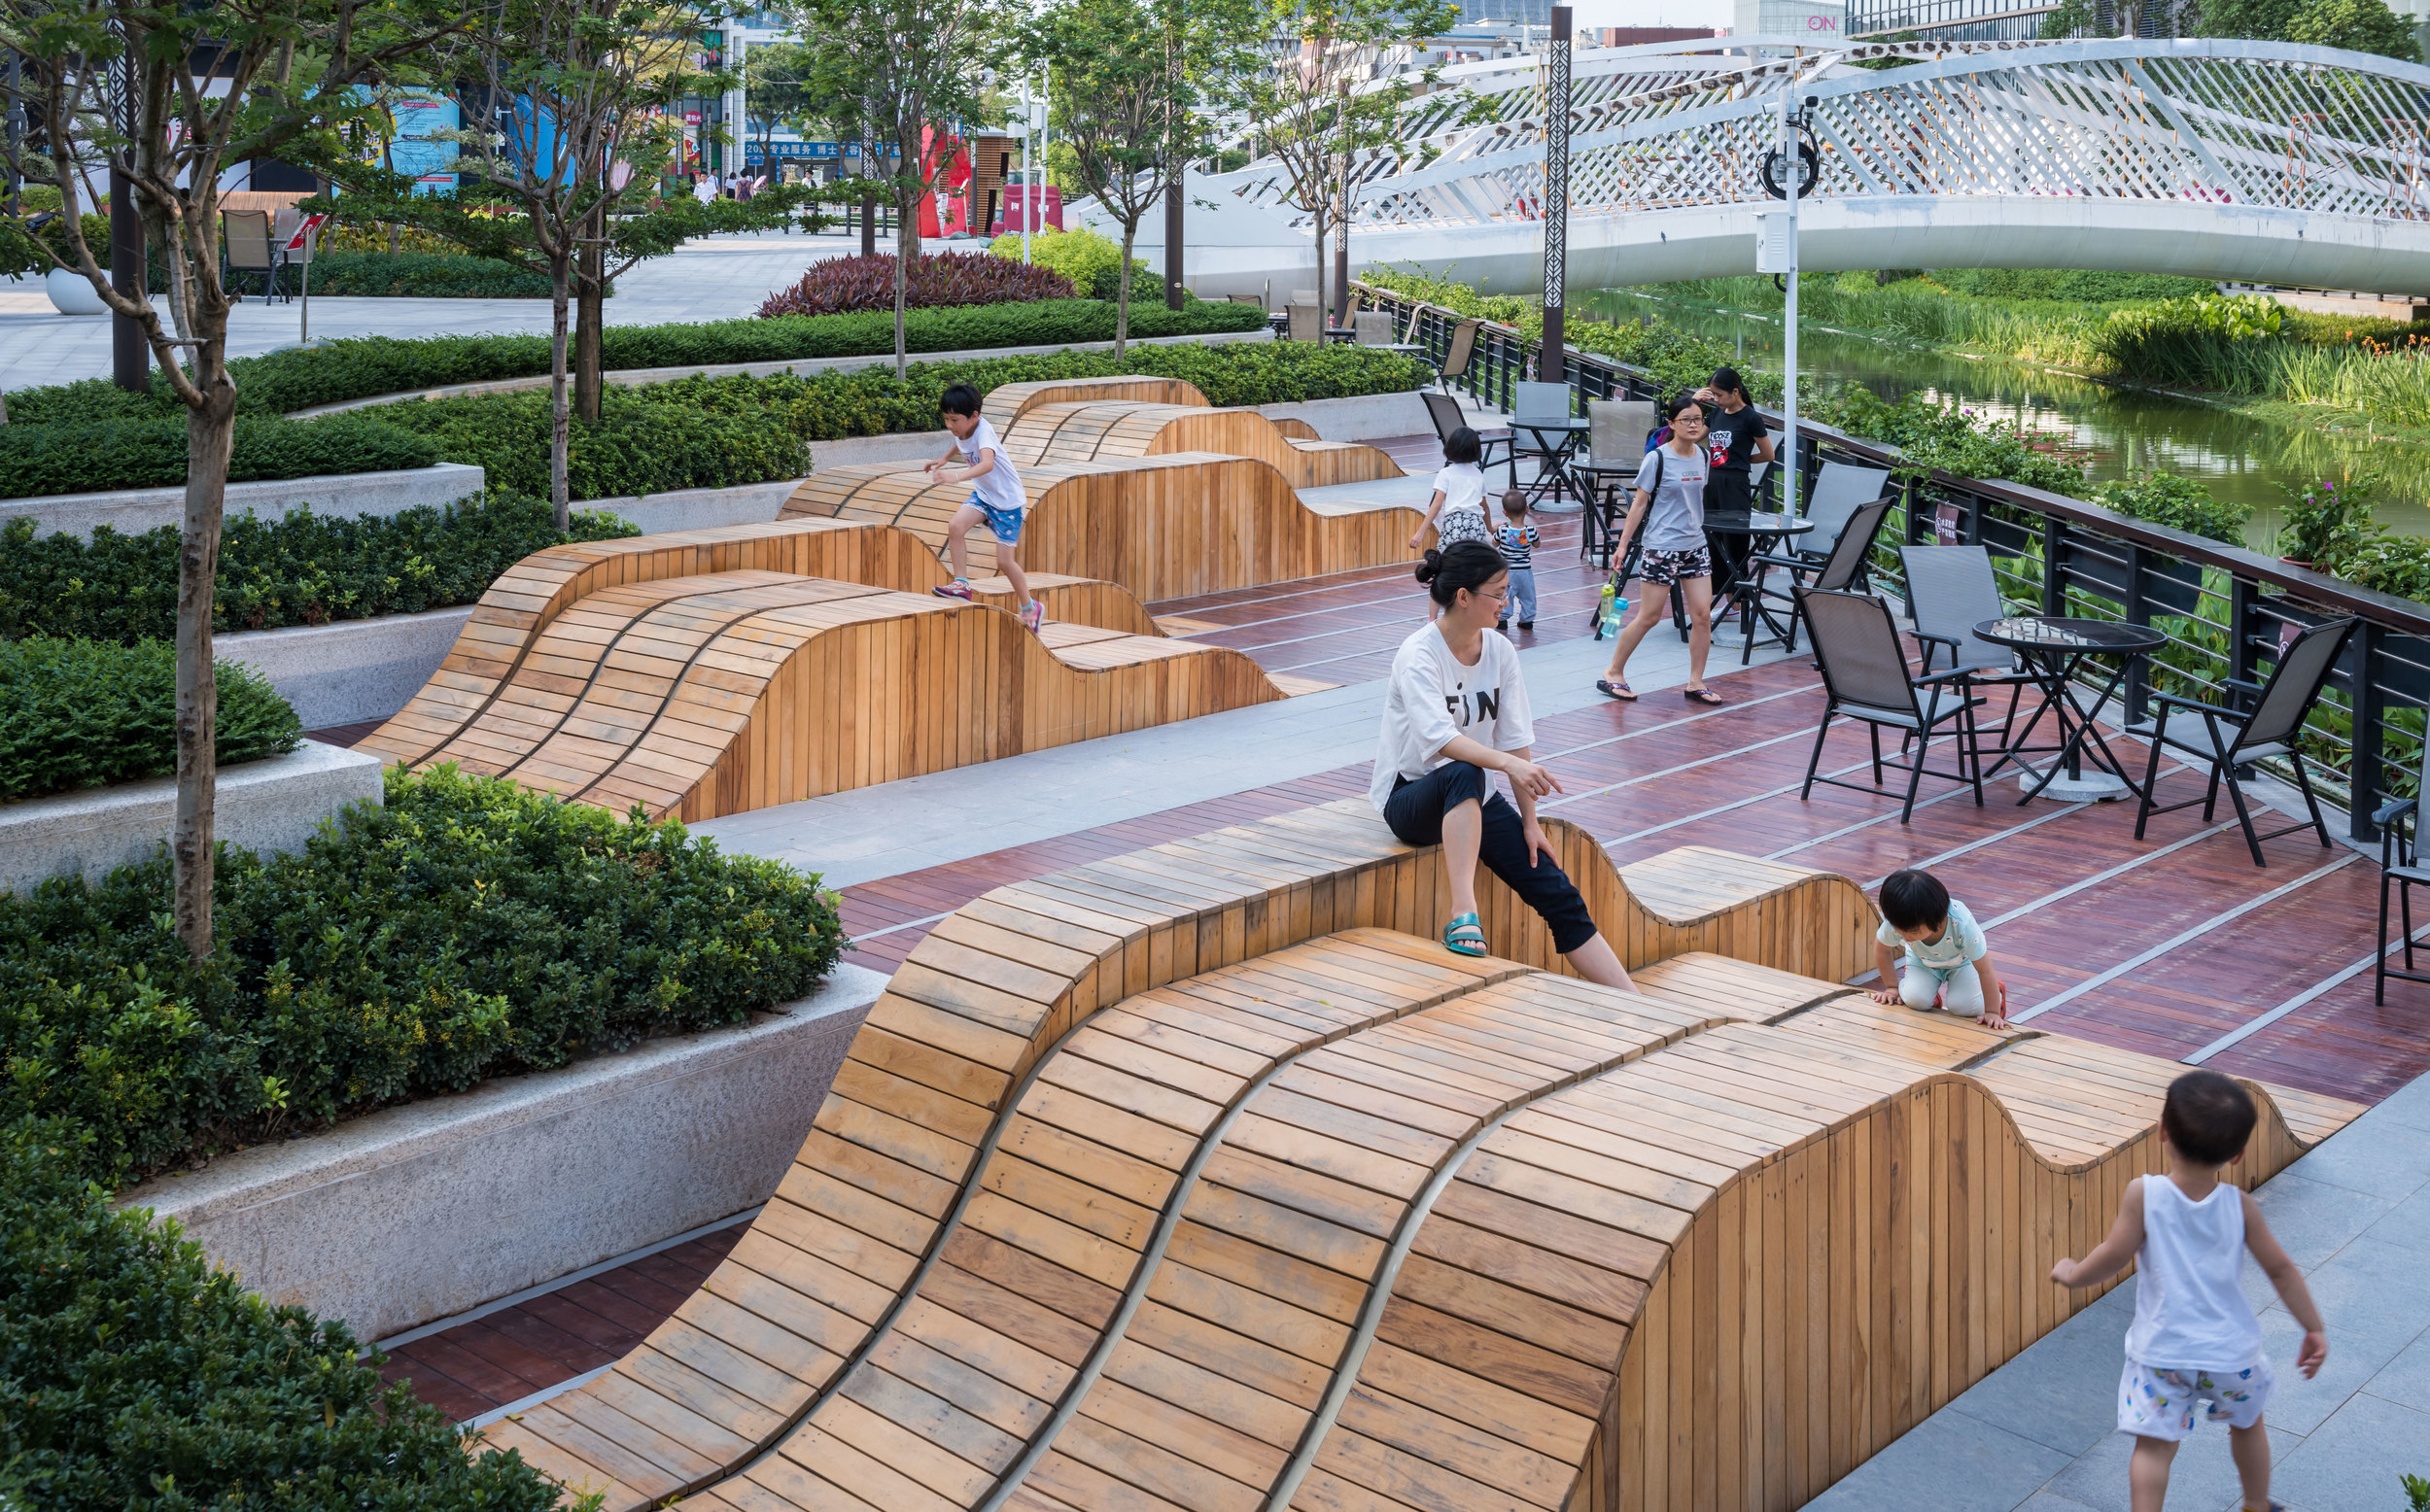 Built photo | Riverfront vein-patterned seating provide a joyful and restful space for families and neighborhood residents